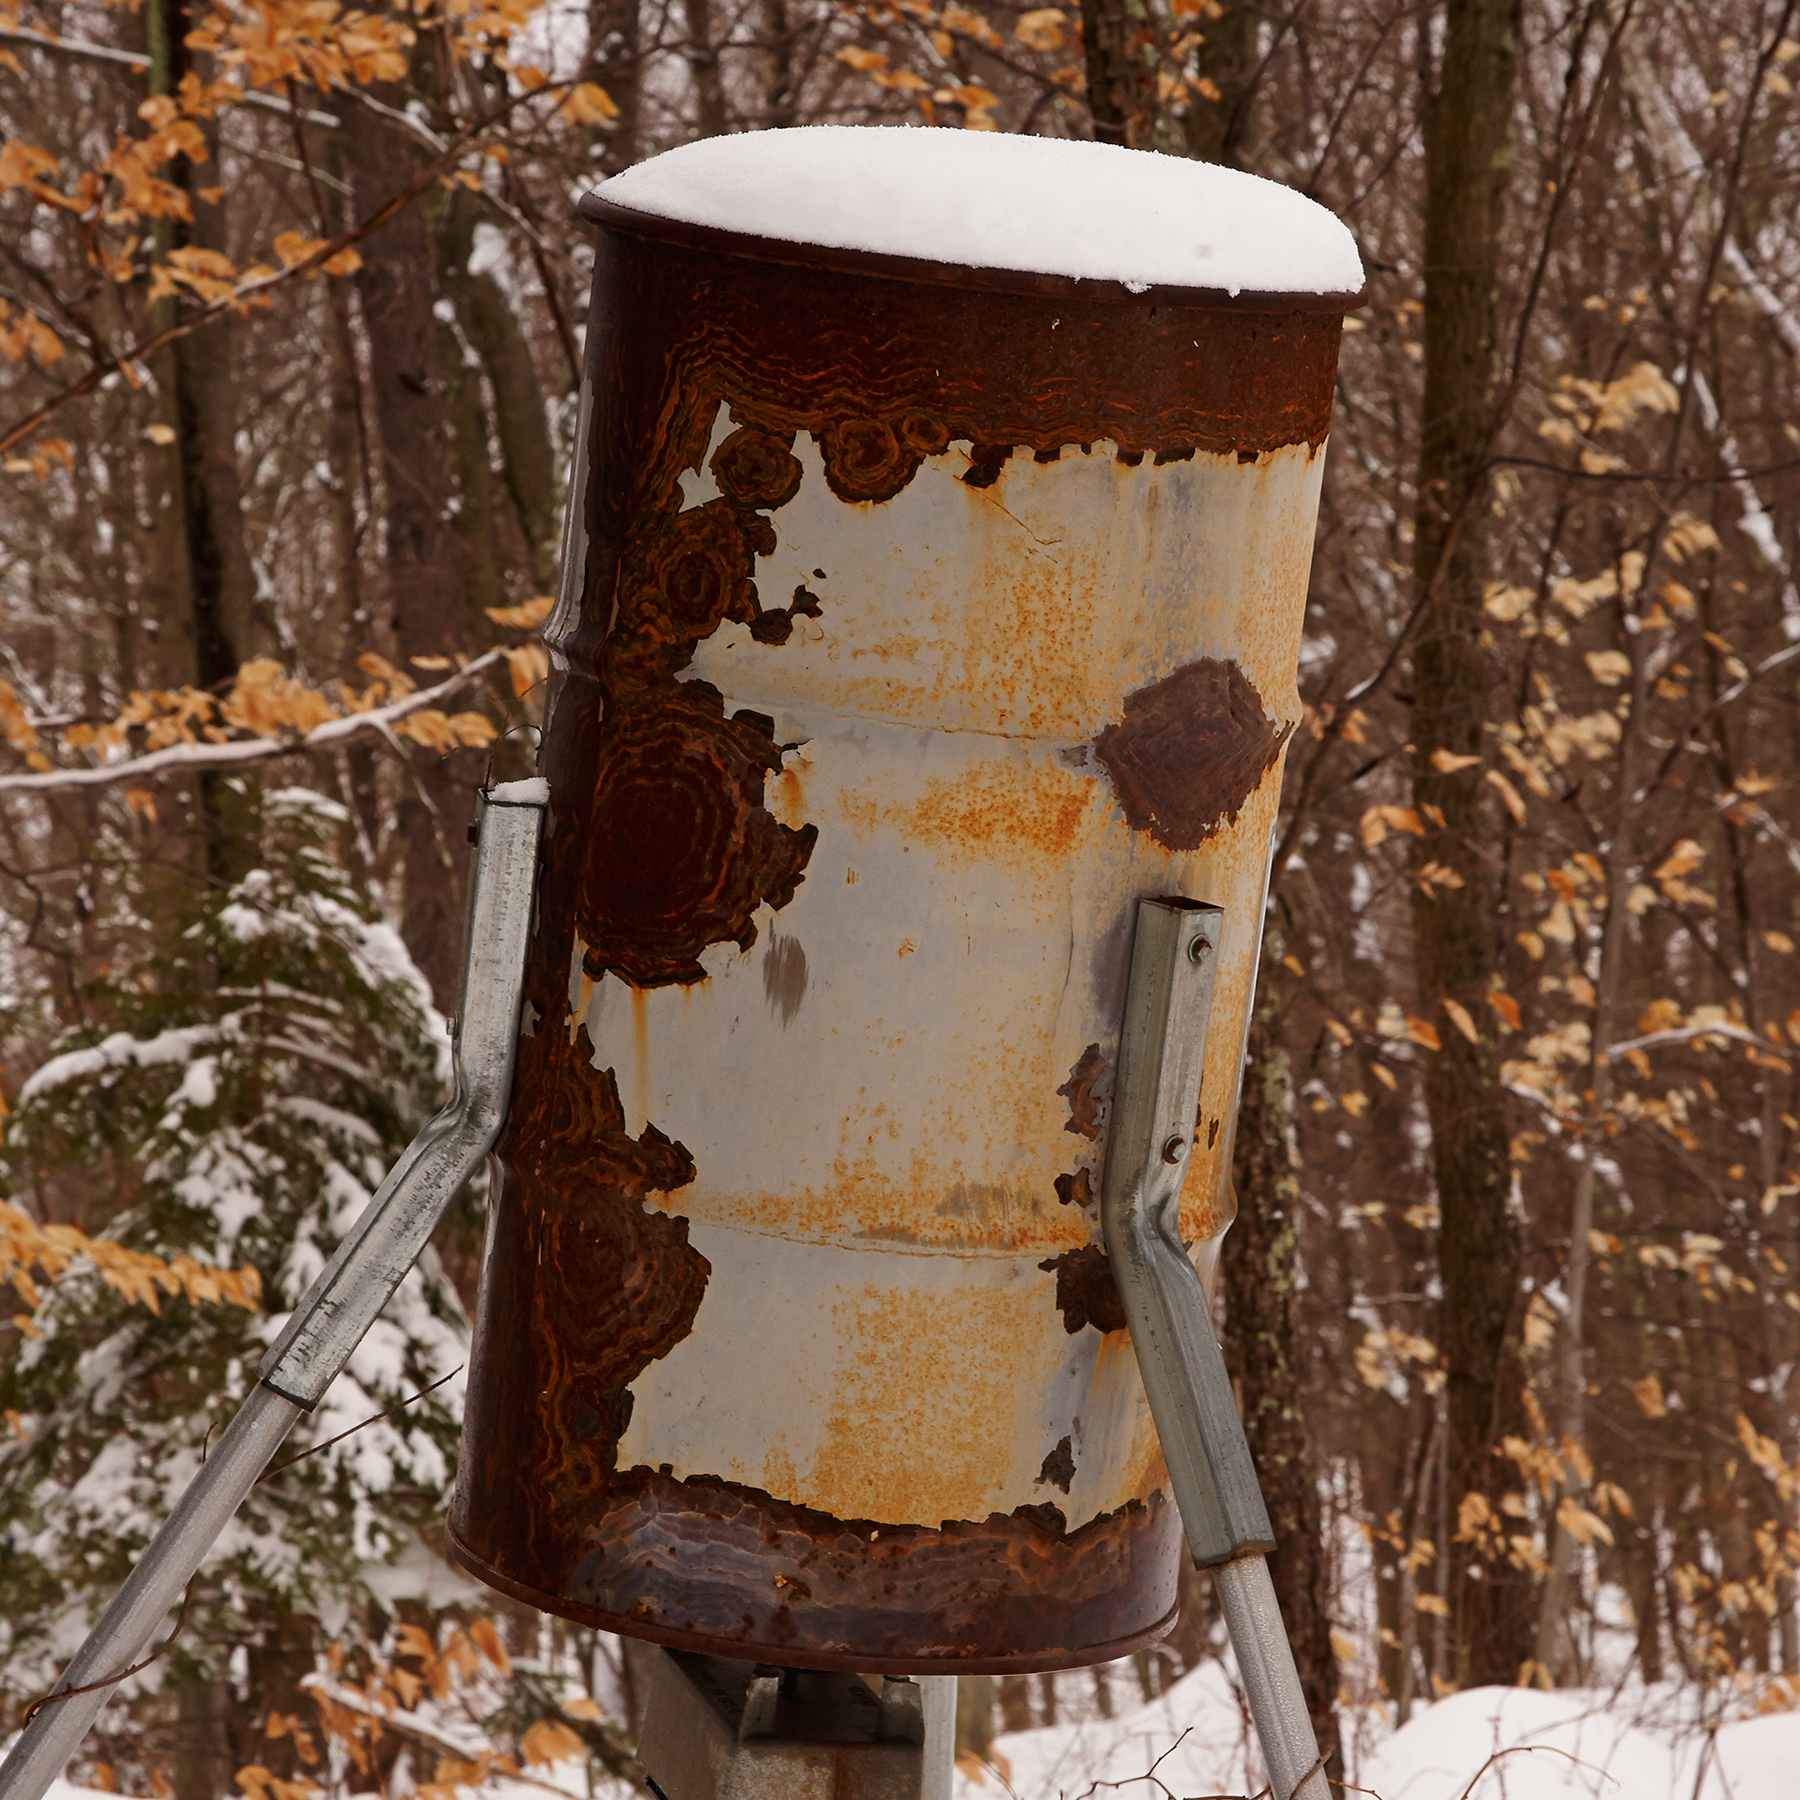 DEER-FEEDER-IN-SNOW-01-AT-WILTSHIRE-FARM-©-JONATHAN-R.-BECKERMAN-PHOTOGRAPHY.jpg